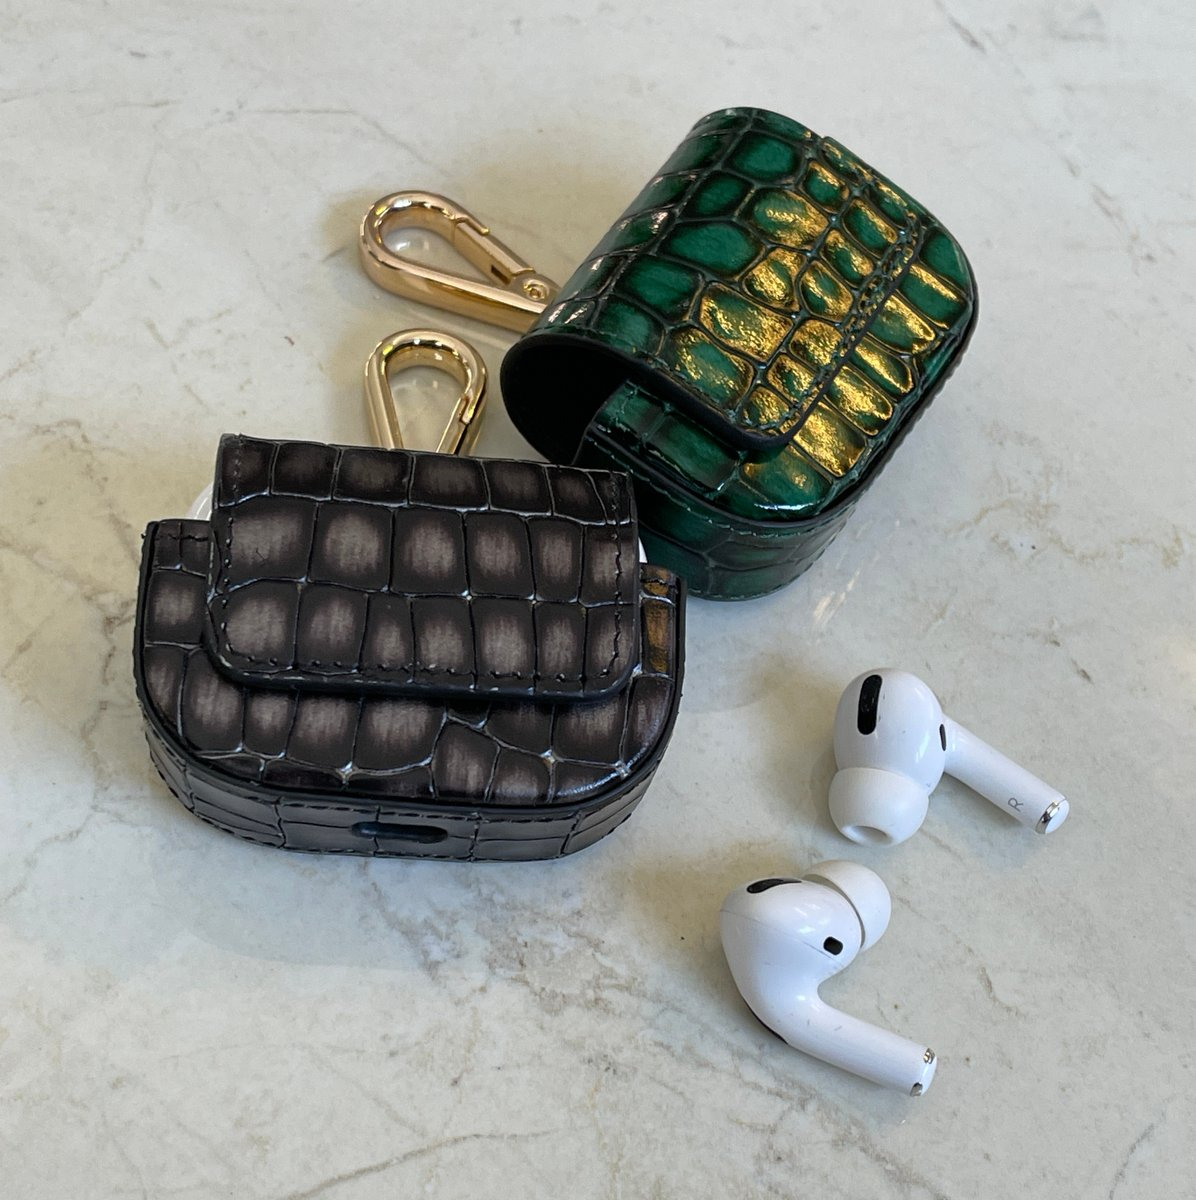 Carry your AirPods with style. Made of finest Leather.  Link in Bio. #airpodspro #luxury #leatheraccessories #goldblackofficial #appleaccessories